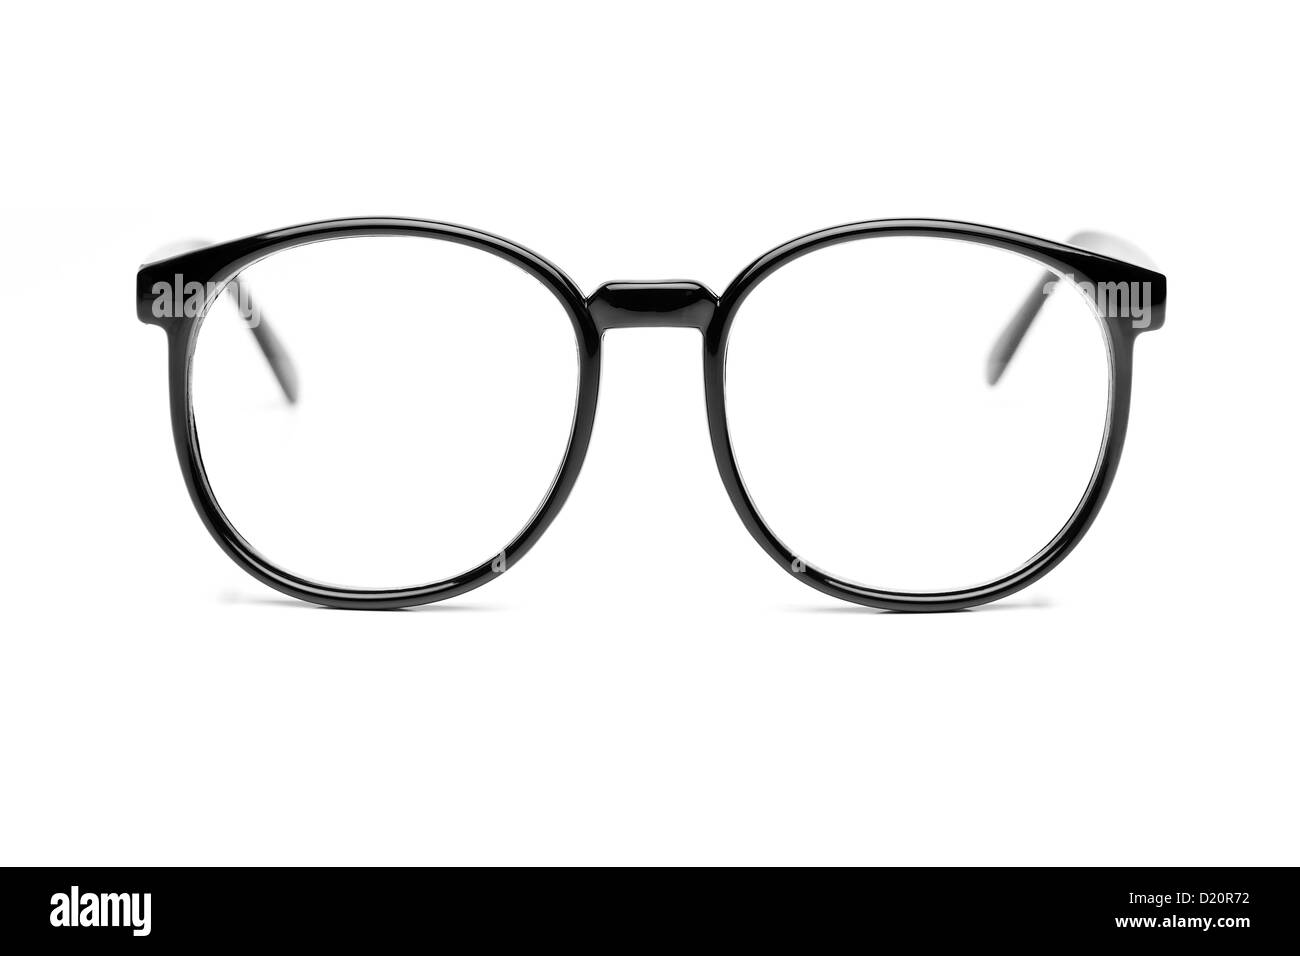 c7a73d9151 Round Glasses Stock Photos   Round Glasses Stock Images - Alamy